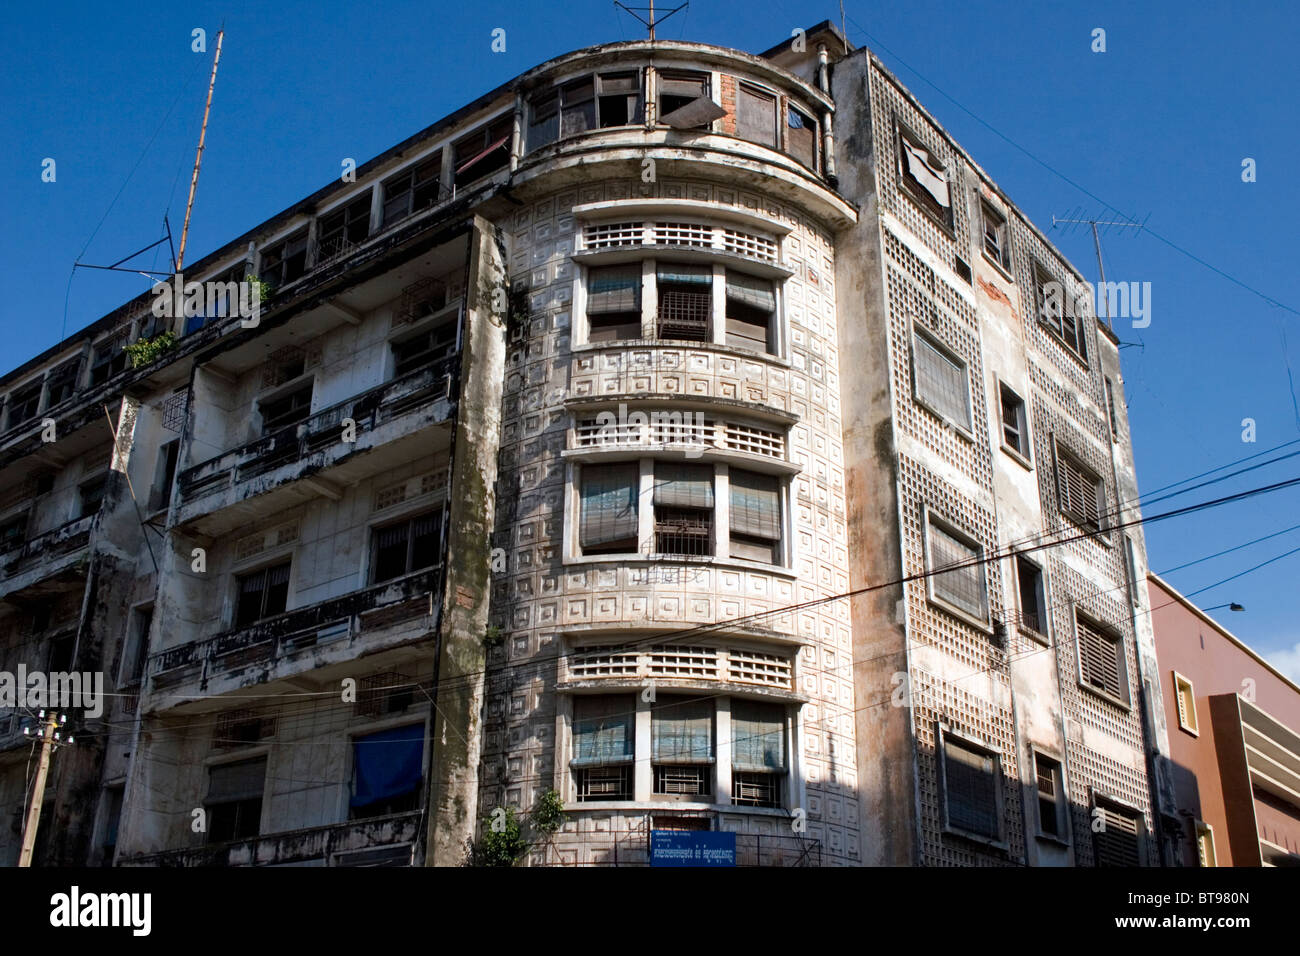 An Old Rundown Apartment Building Is Part Of The Urban Landscape In Phnom Penh Cambodia